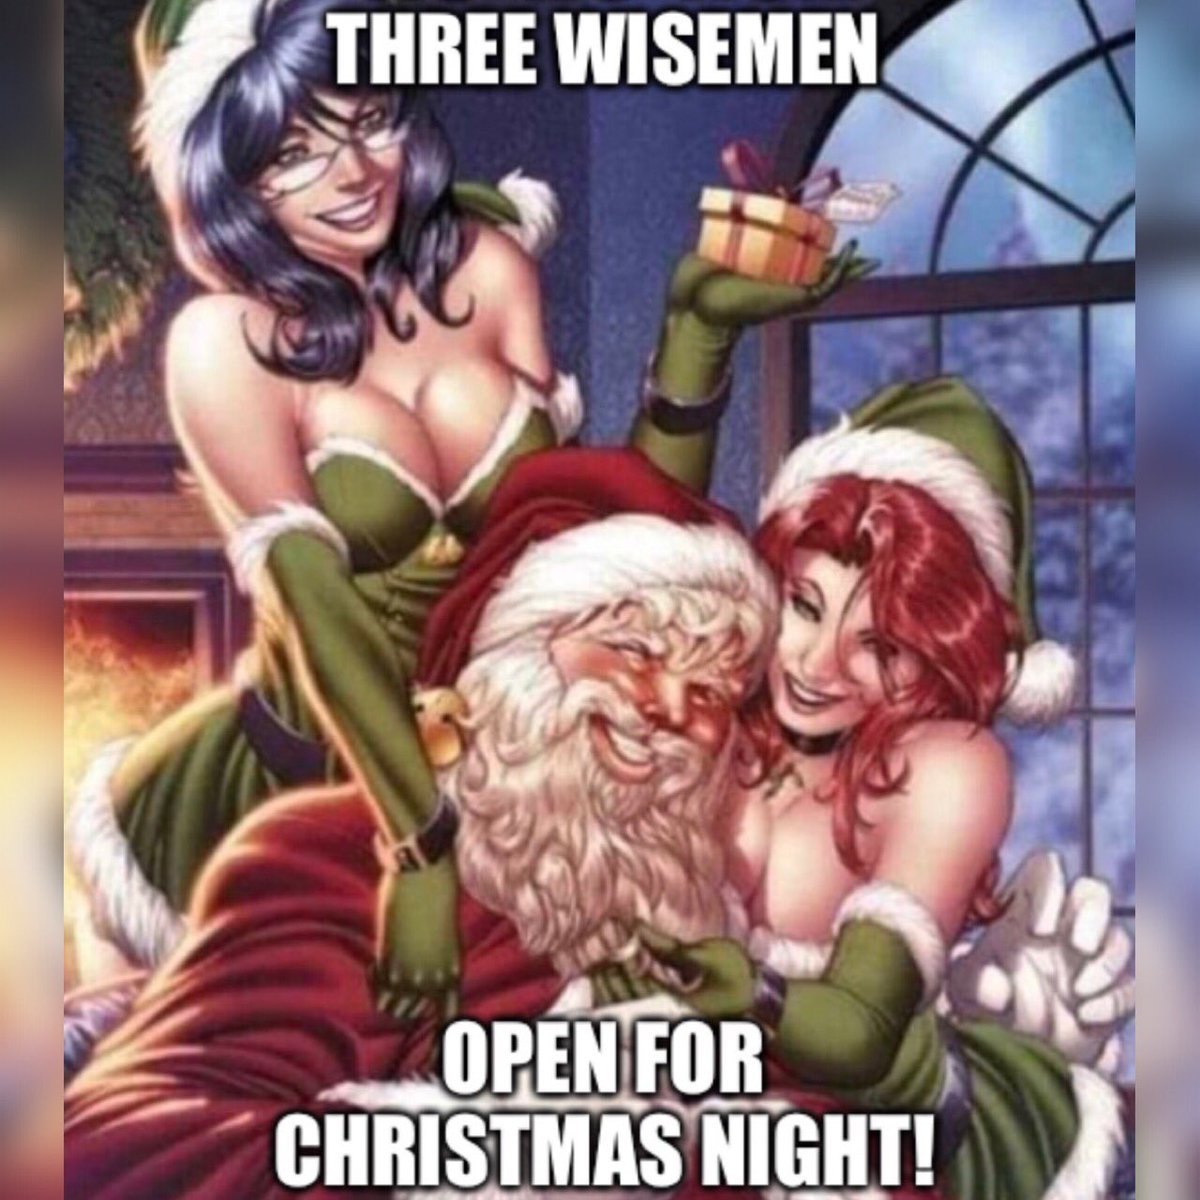 Three Wisemen ~ #TacoTuesday ... Open at 5pm for #Christmas Night 🔥 Merry Christmas! 🎅🏼 🌮 🎁 Gem Ray at 480.772.7613 (Text) ... http://www.threewisemenaz.com @ScottsdaleNites @GemRayMedia  #Christmas2018 #ChristmasSpecial #party #VIP